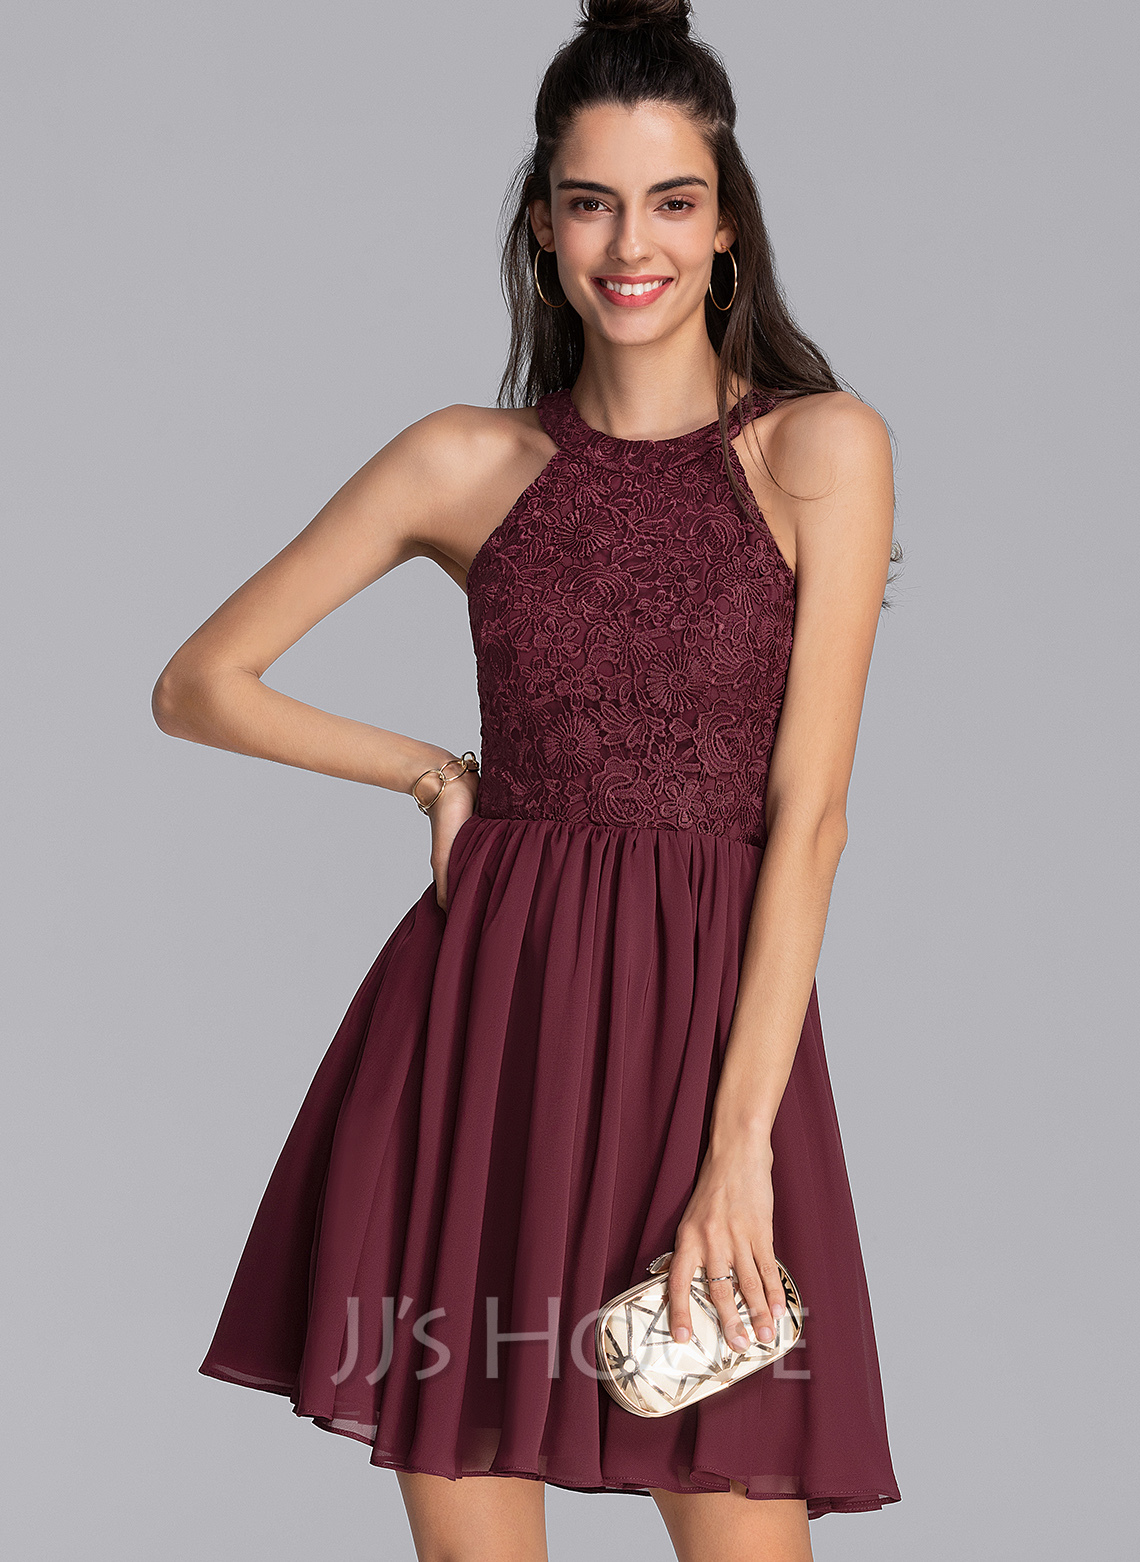 A-Line Scoop Neck Short/Mini Chiffon Prom Dresses